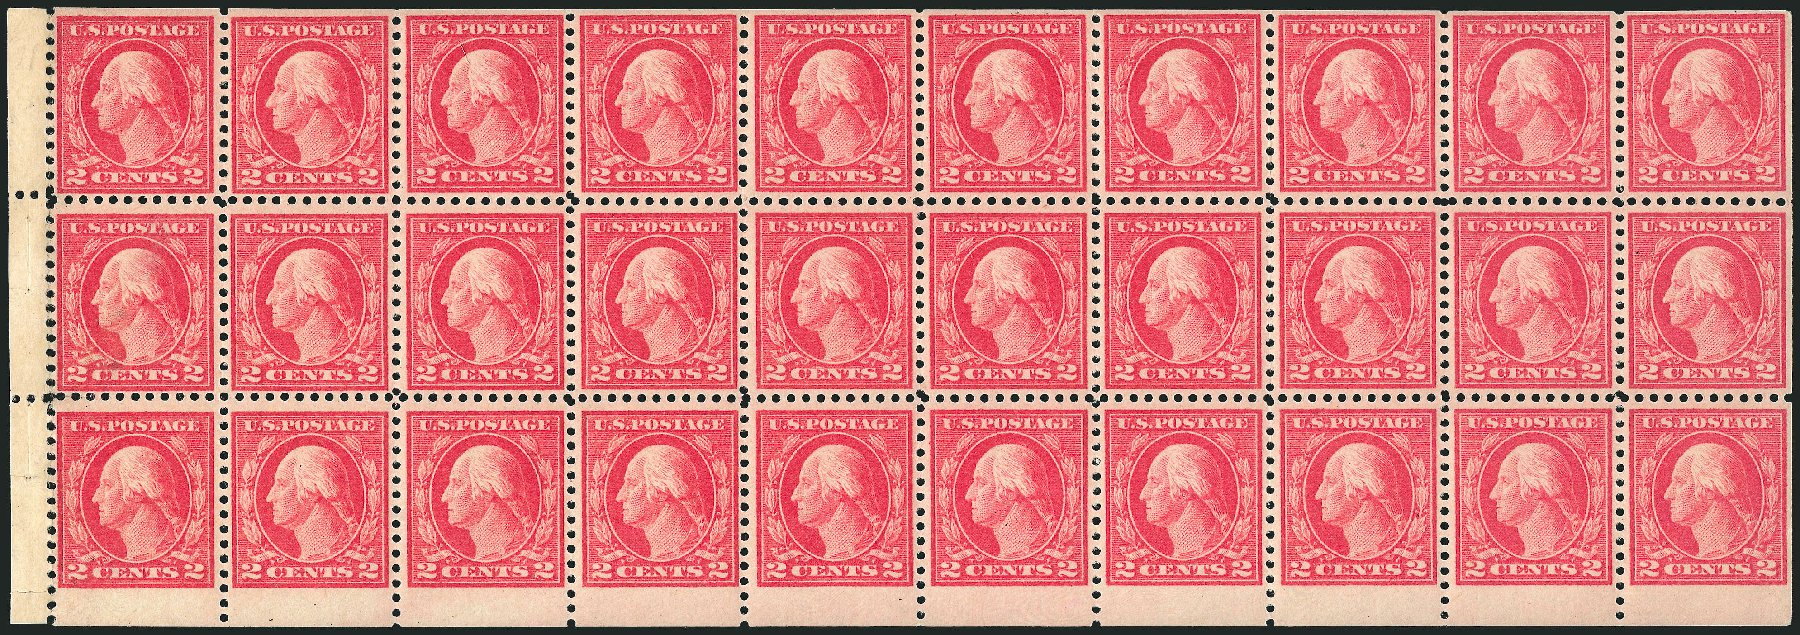 Prices of US Stamp Scott Catalog 499 - 1917 2c Washington Perf 11. Robert Siegel Auction Galleries, Apr 2015, Sale 1096, Lot 744